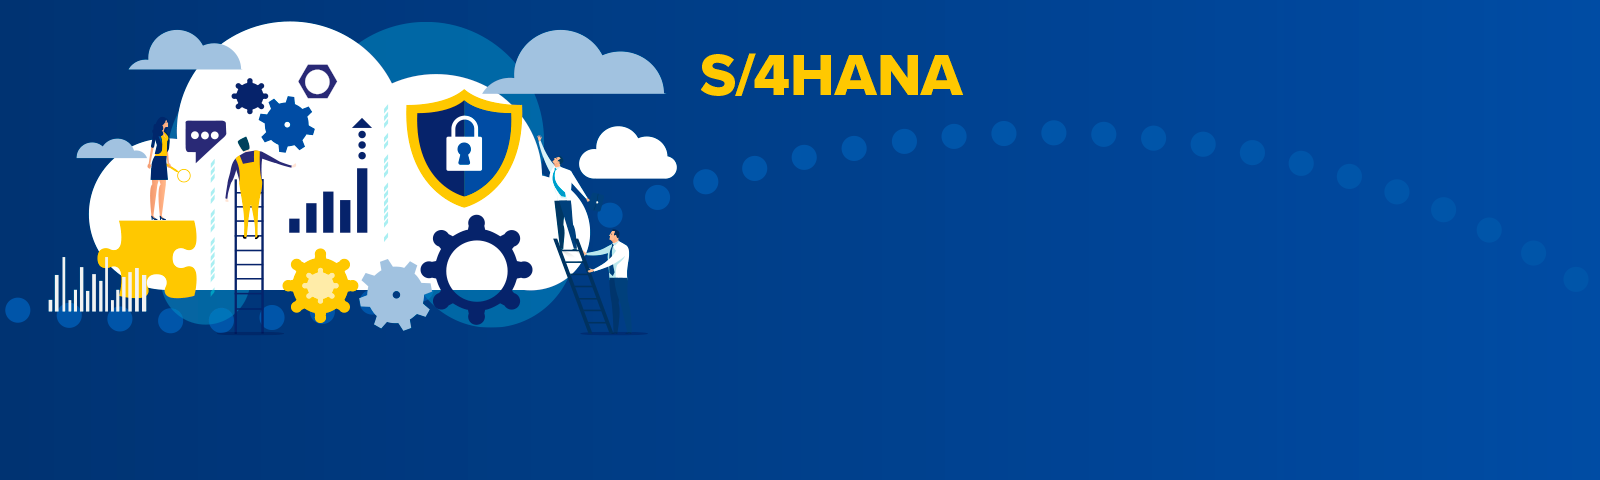 S/4HANA - Rise with SAP demystified and Artilat Customer Journey